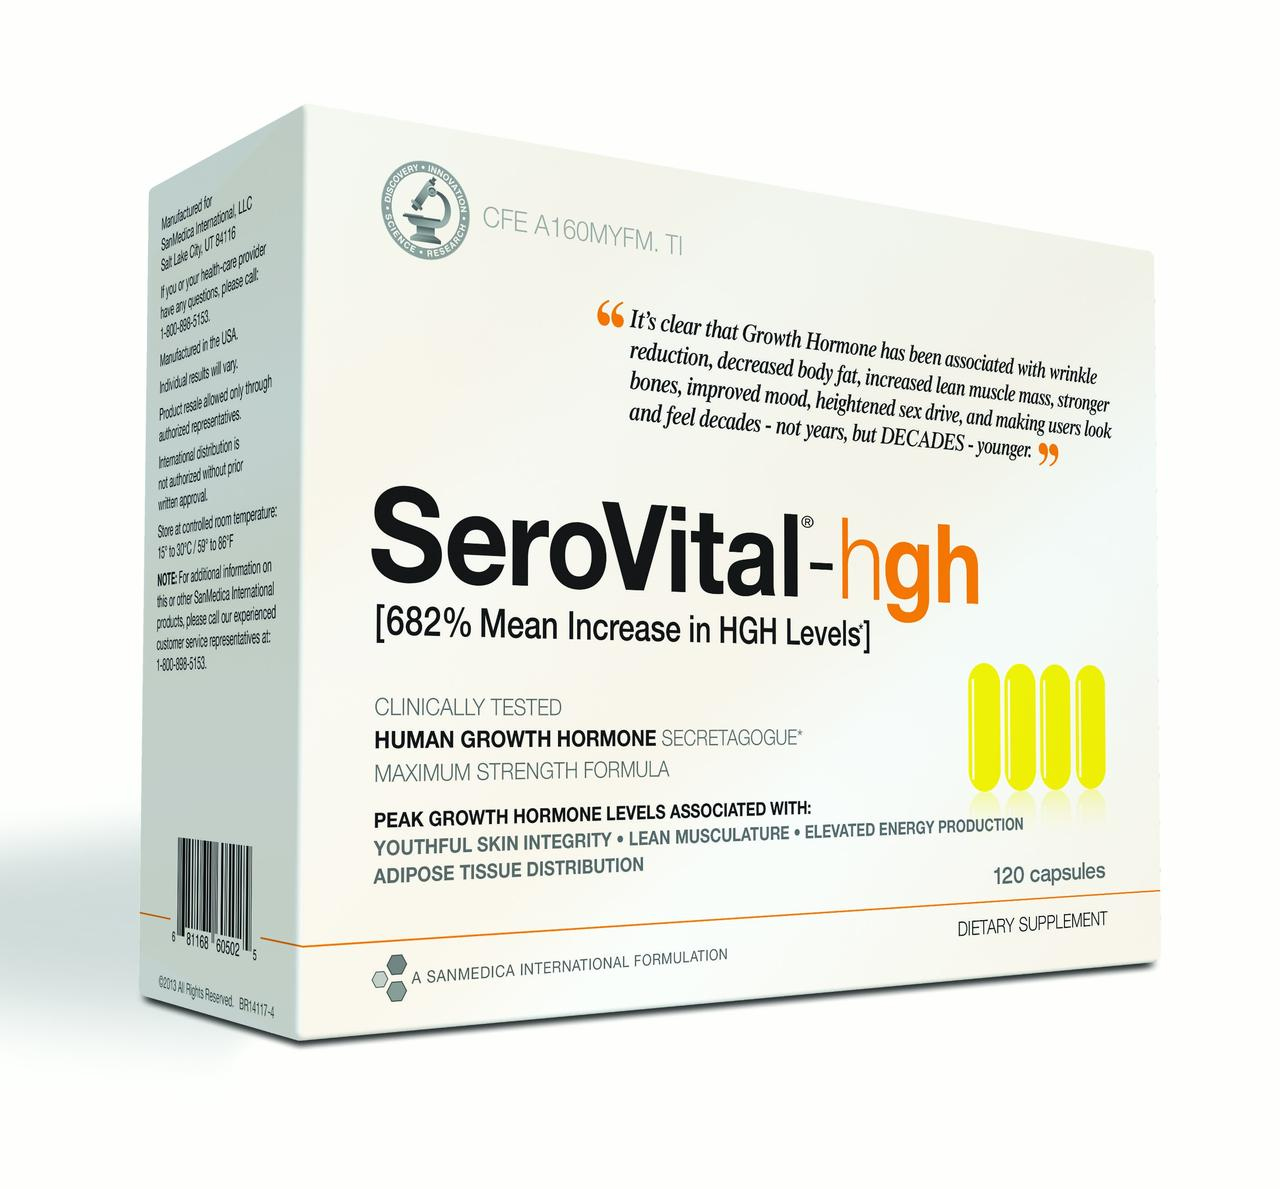 Serovital Anti-Aging Supplement Capsules, 120 Ct